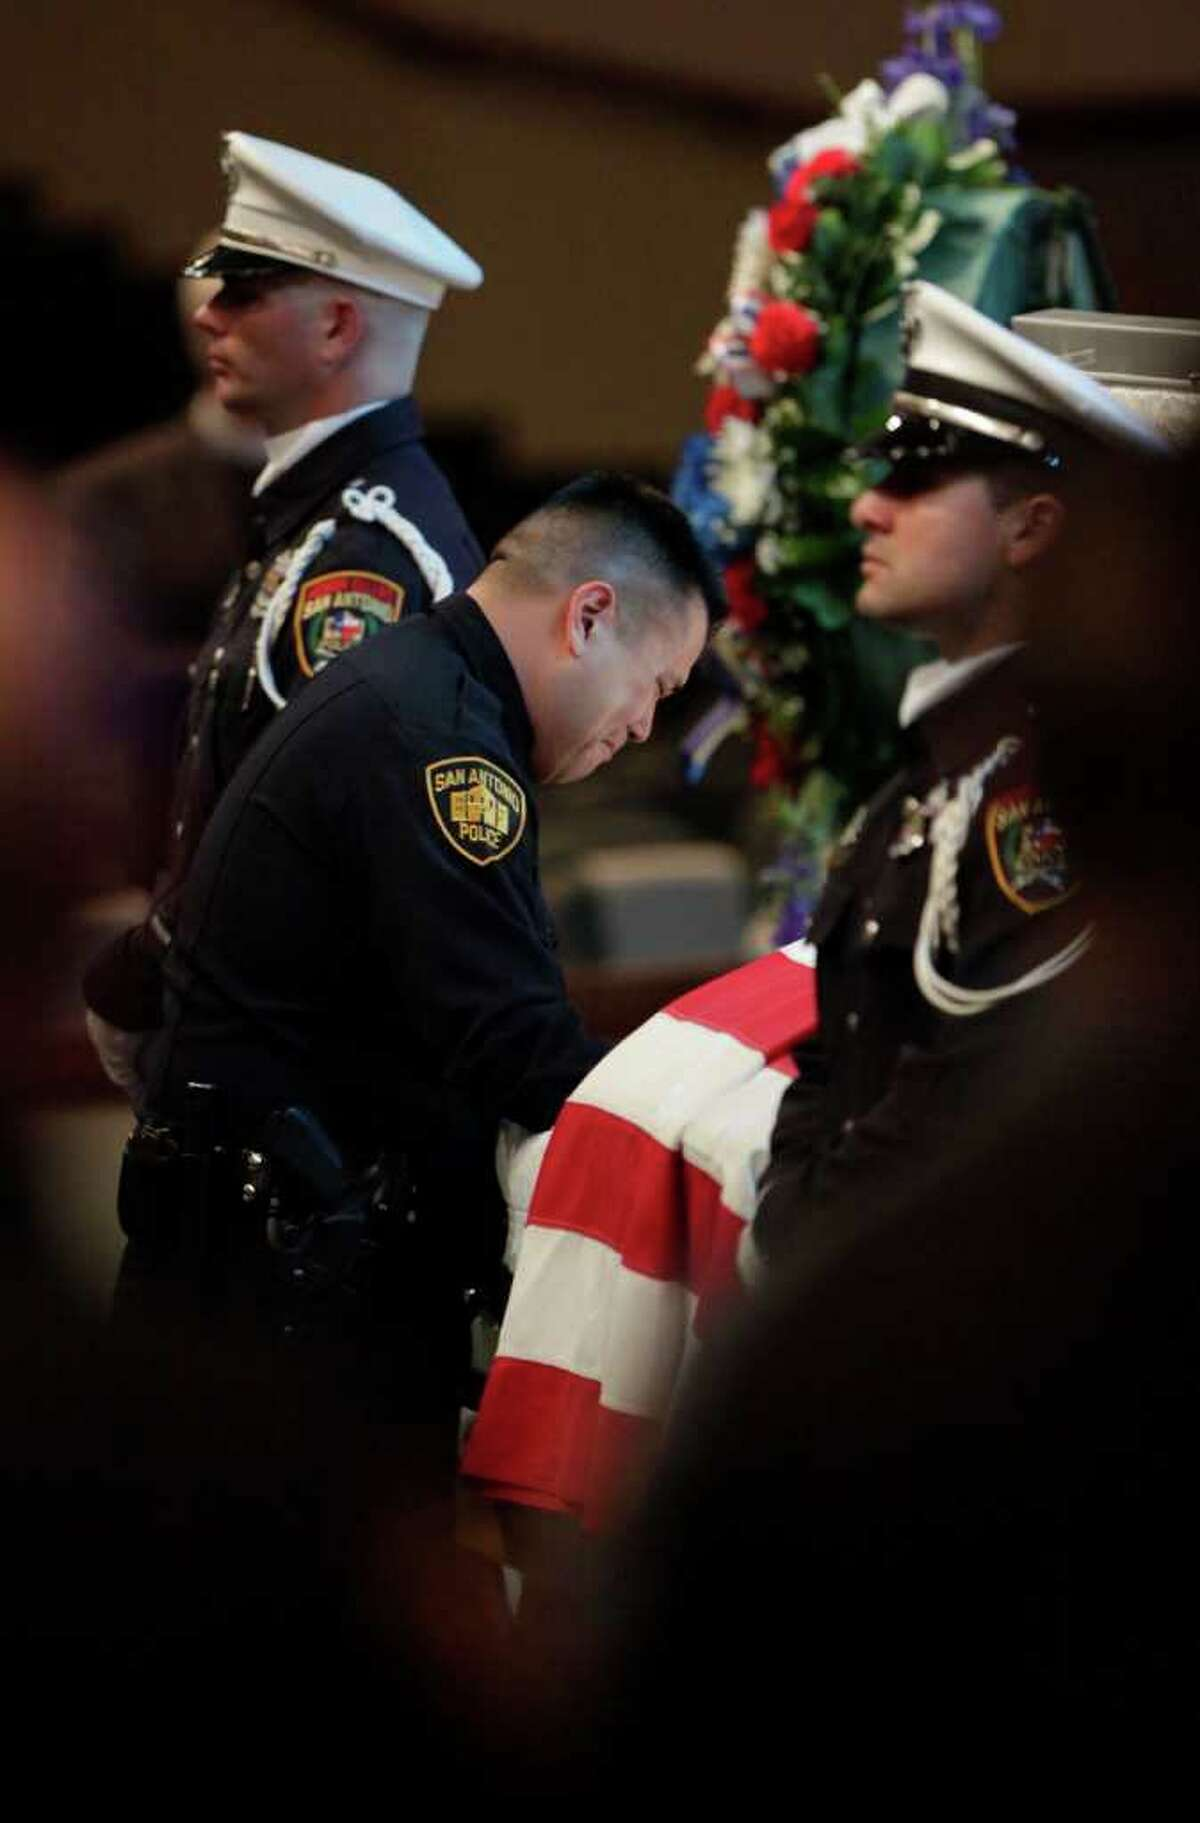 Metro daily - SAPD's Roger De La Rosa, father of Stephanie Ann Brown's daughter, pays his respects to fellow officer Brown at the funeral service for San Antonio Police Officer Stephanie Ann Brown, at Community Bible Church, Monday, March 21, 2011. Photo Bob Owen/rowen@express-news.net